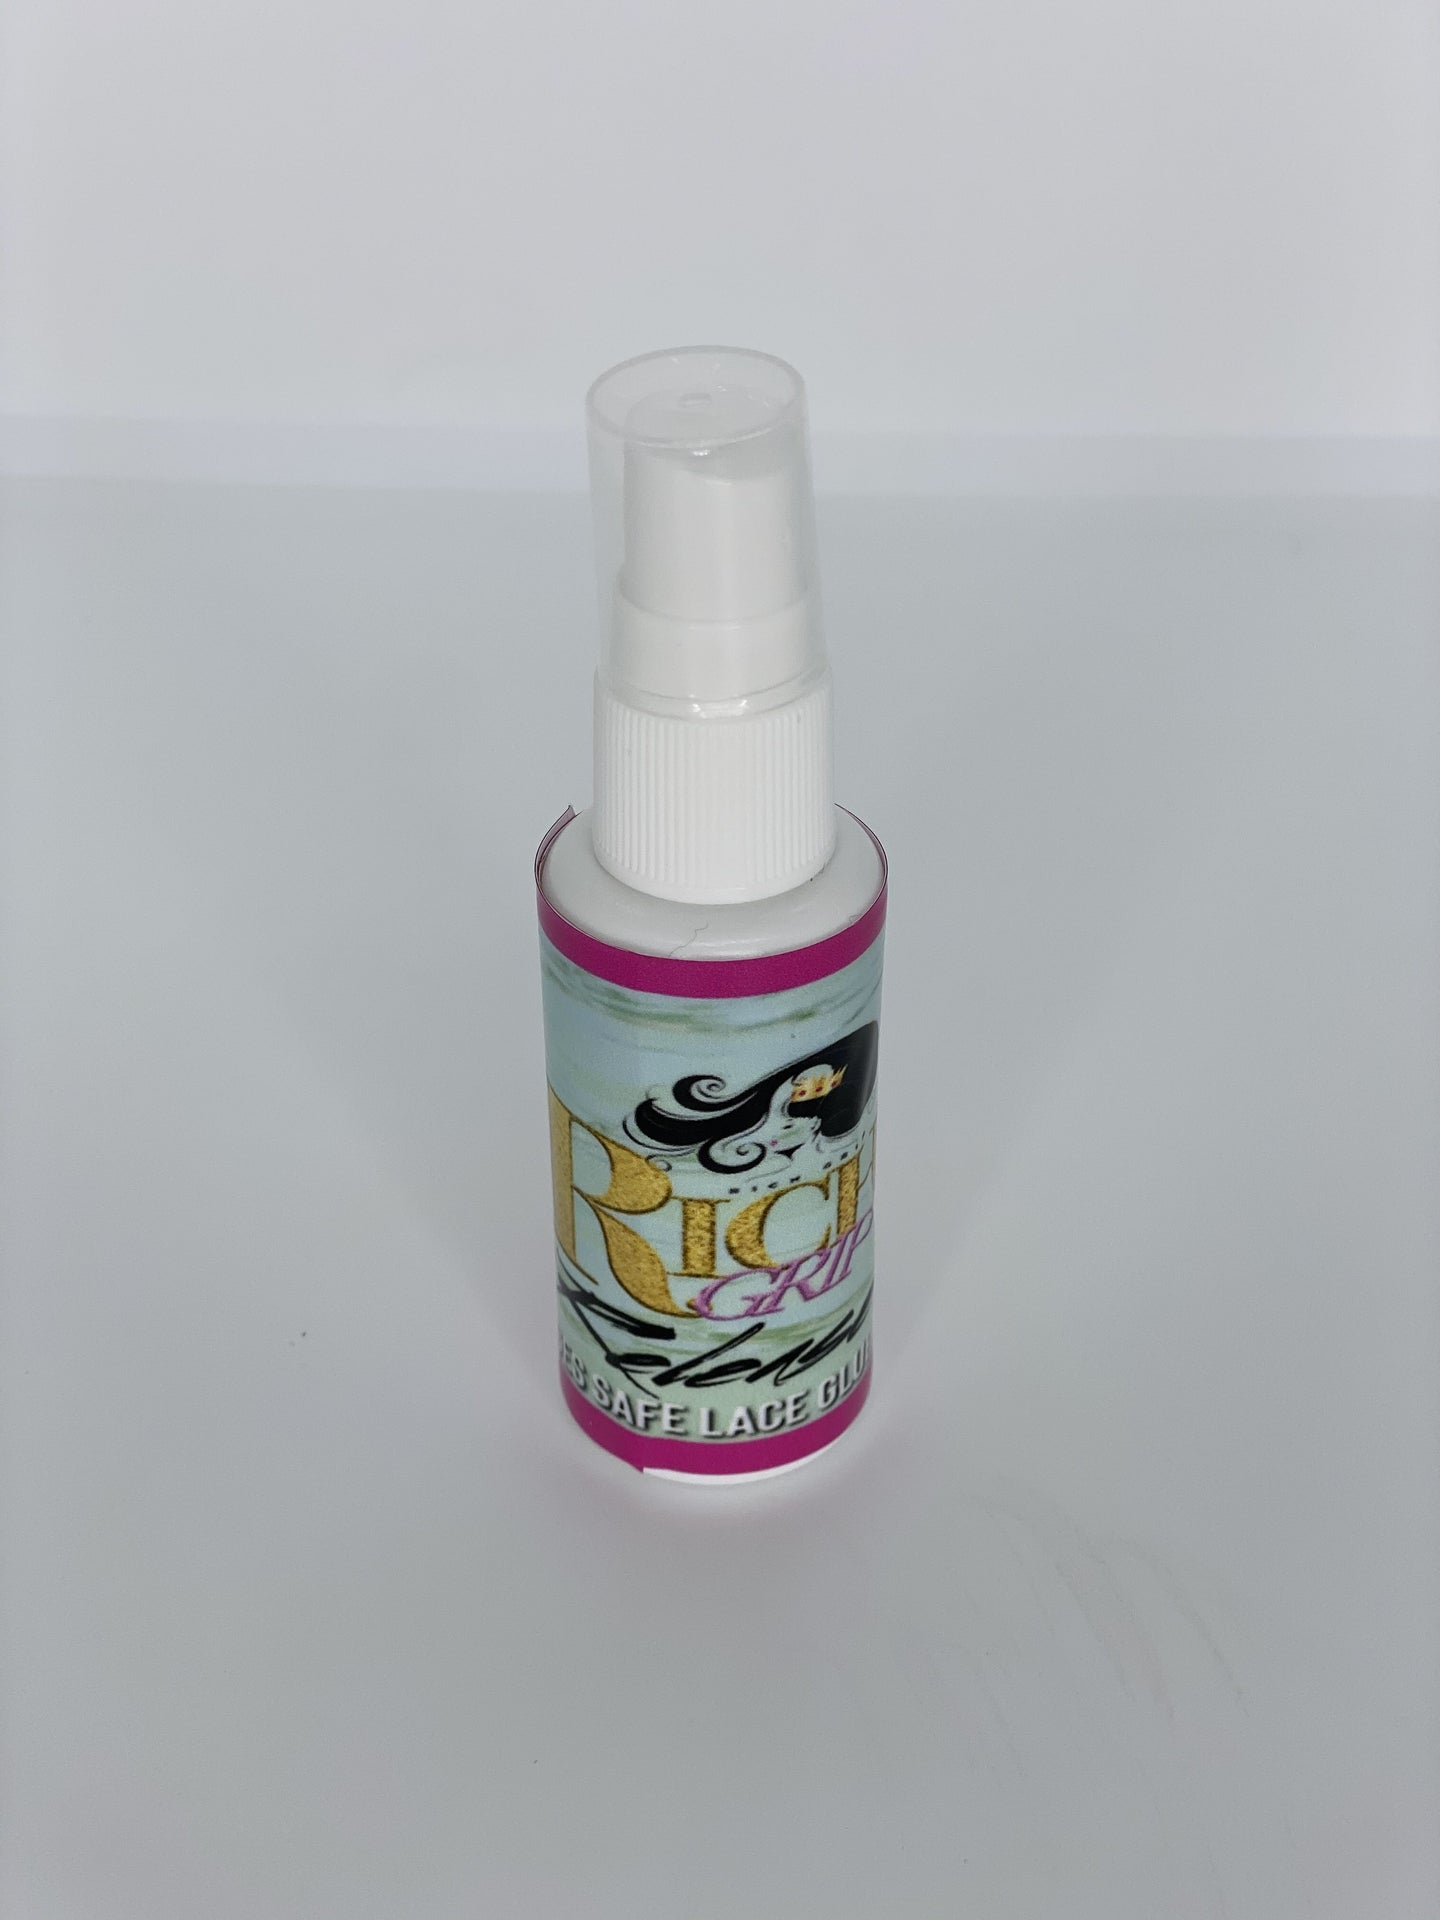 $15 RICH GRIP EDGES PROTECTION LACE GLUE REMOVER